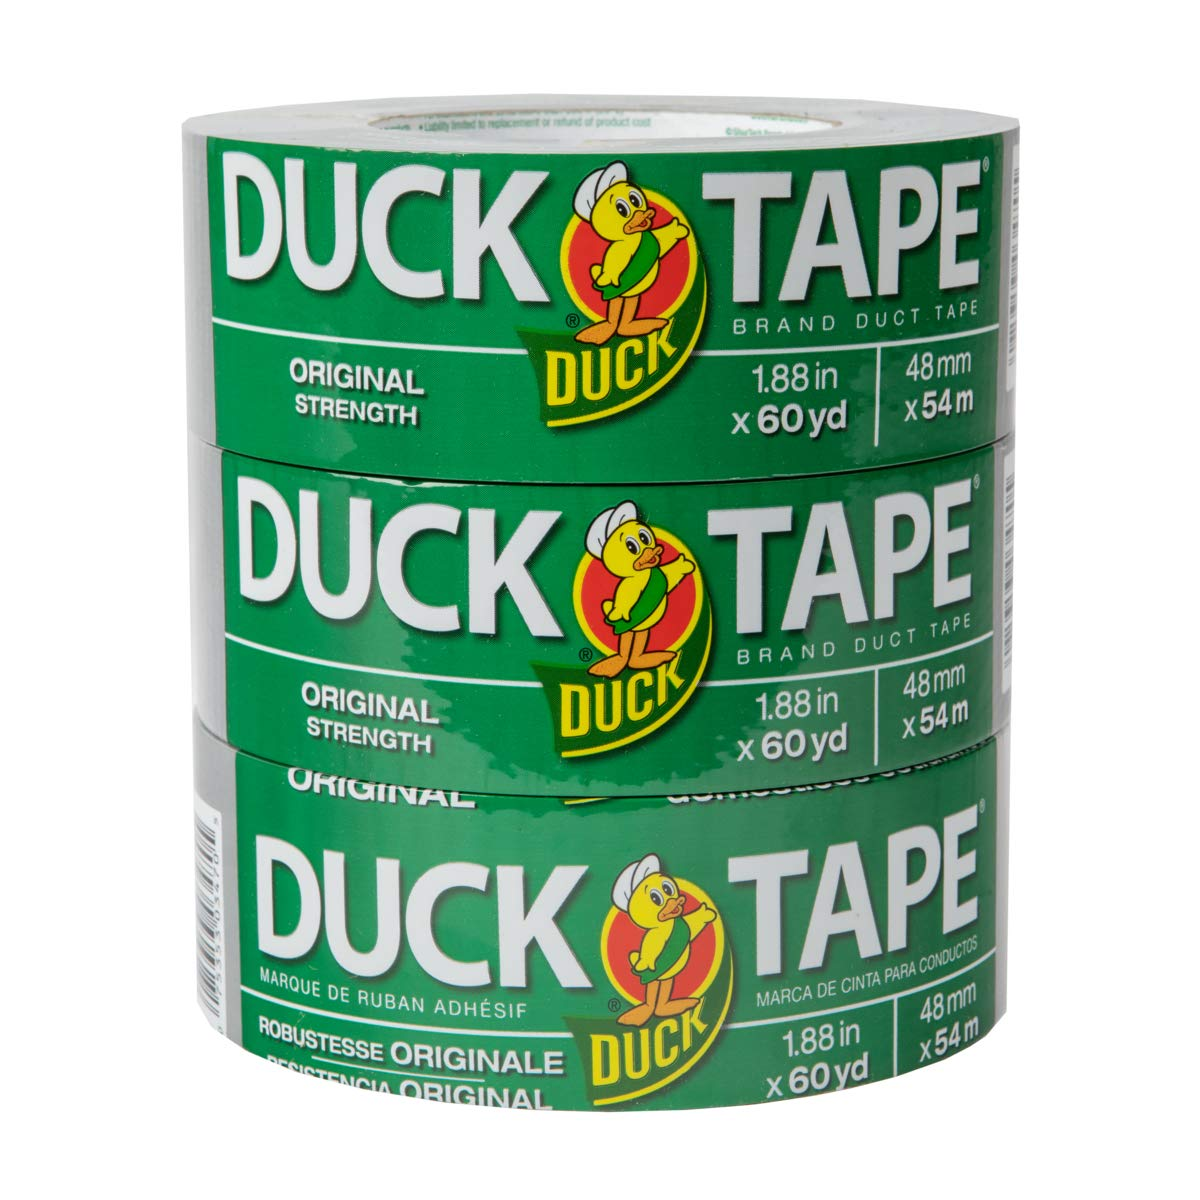 The Original Duck Tape Brand286553 Duct Tape 3-pack 1.88 Inch x 60 Yard, 180 Total Yards Silver